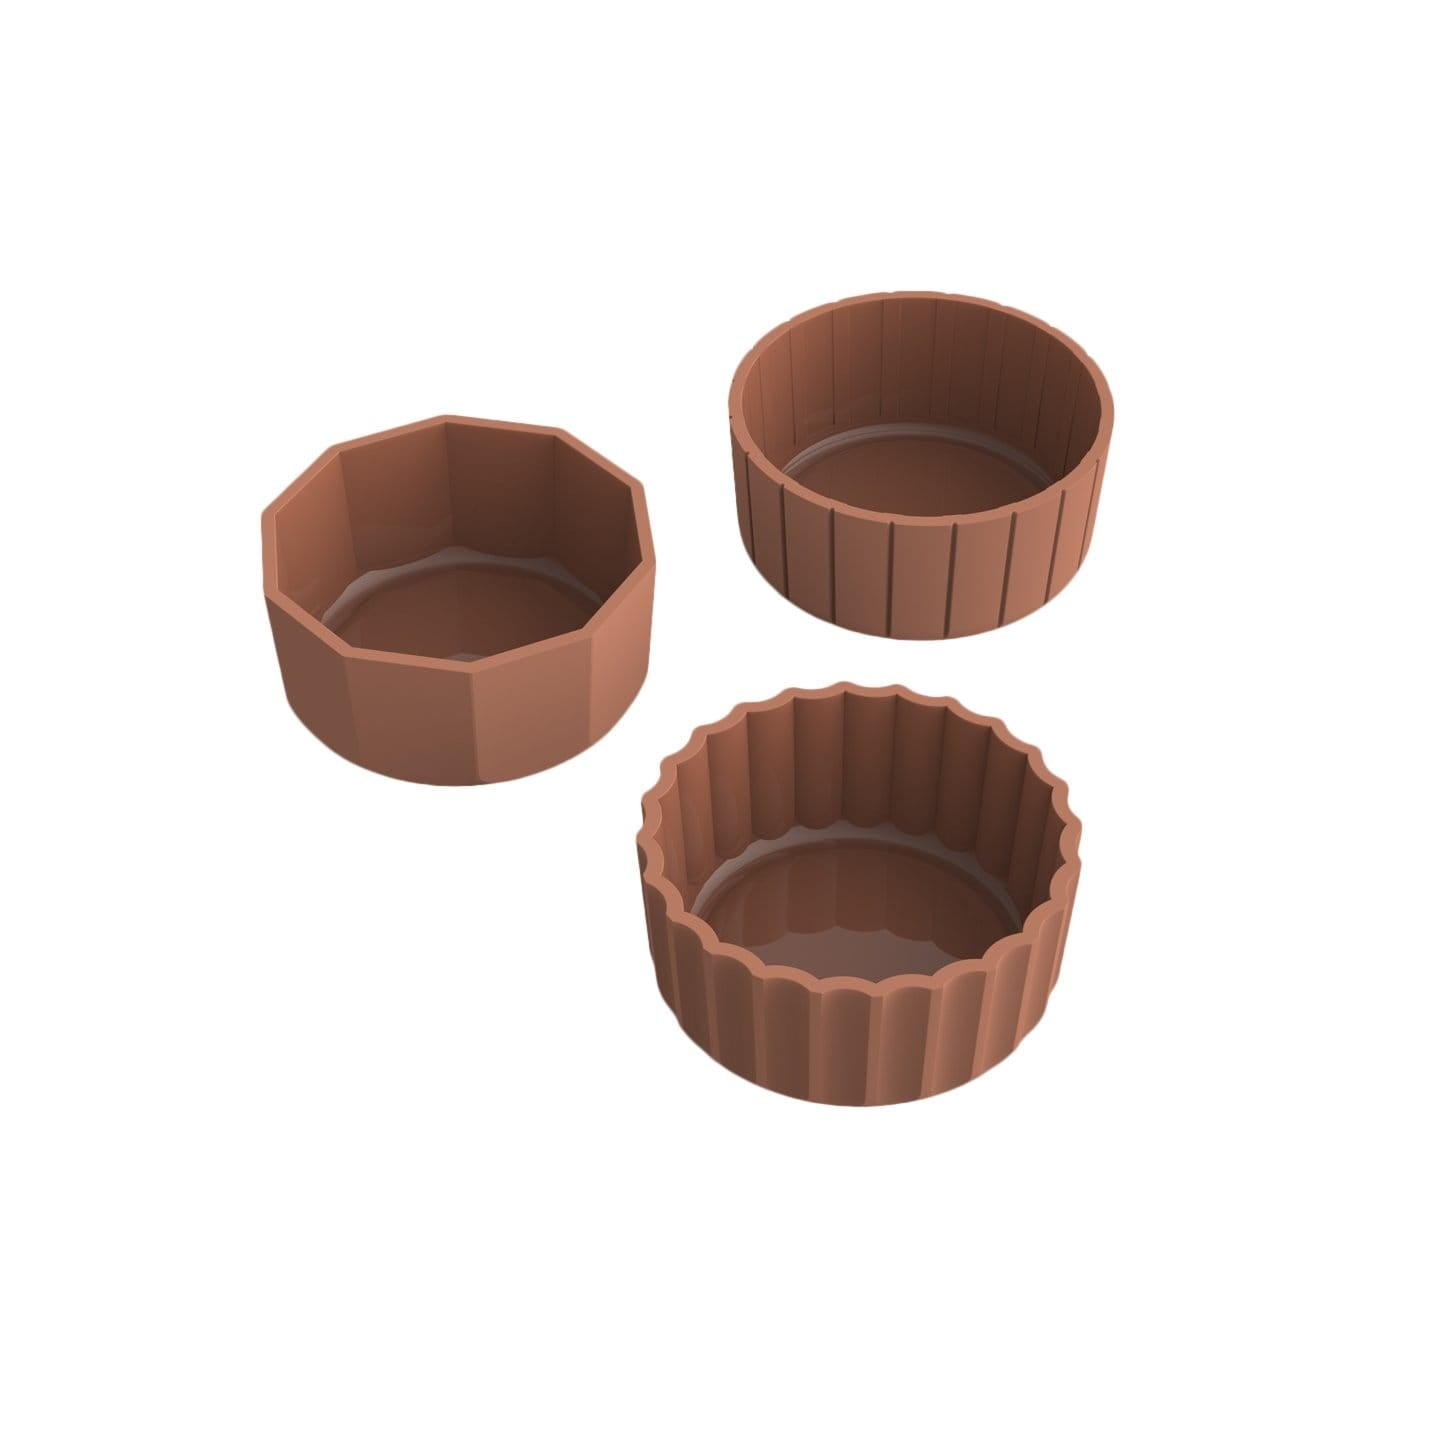 Hue Minimal Decorative Objects Trio Terracotta Bowls